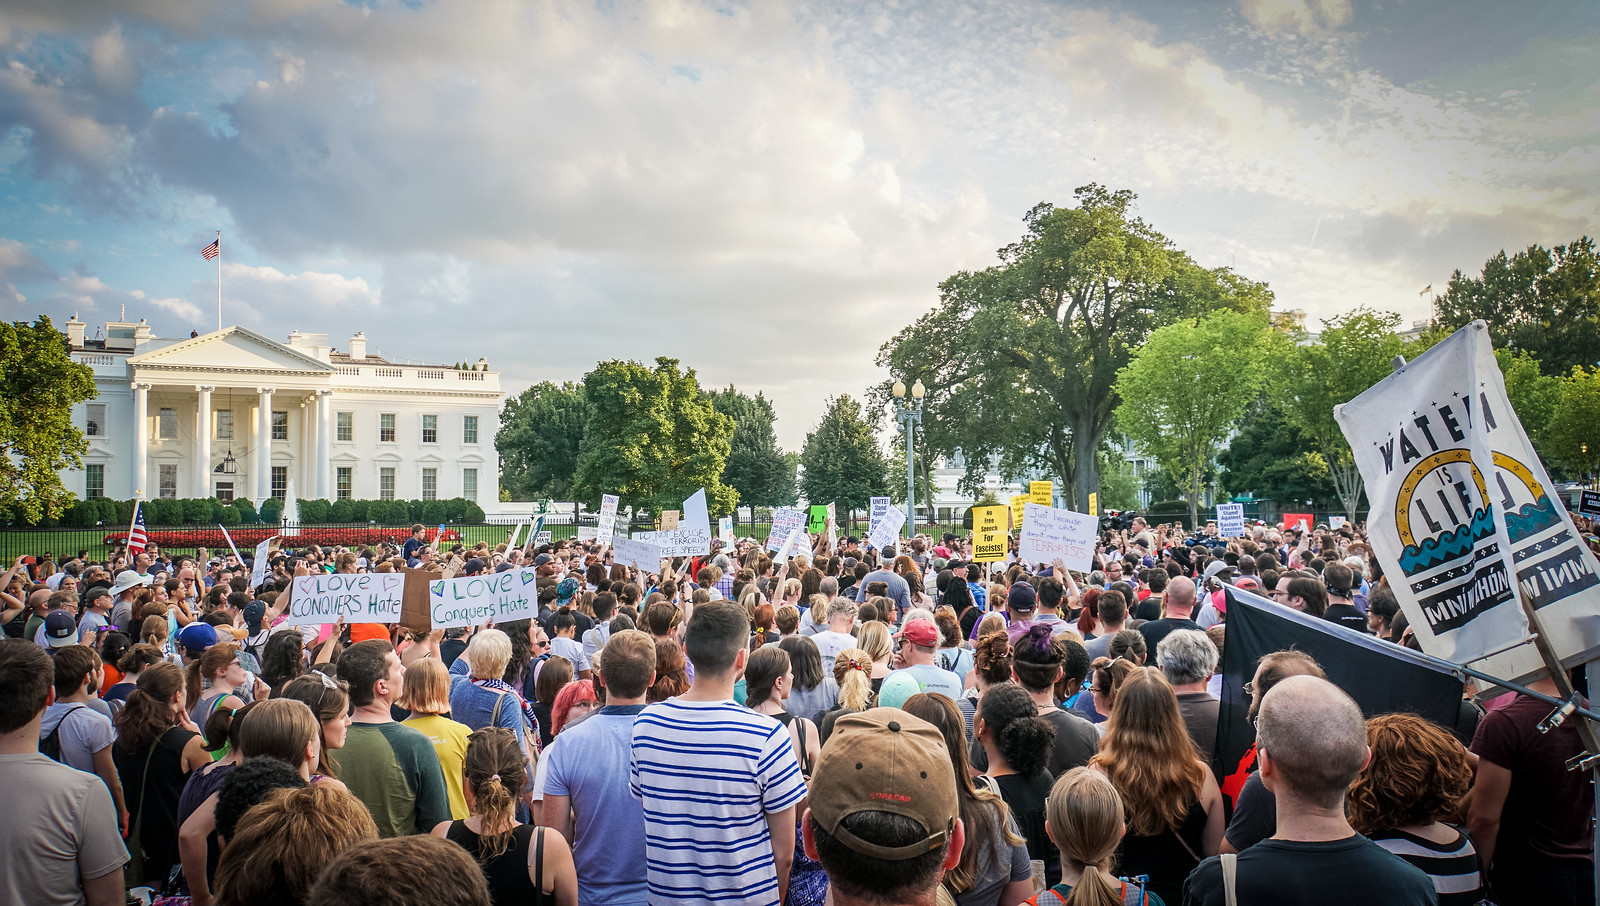 2017.08.13 Charlottesville Candlelight Vigil, Washington, DC USA 8055